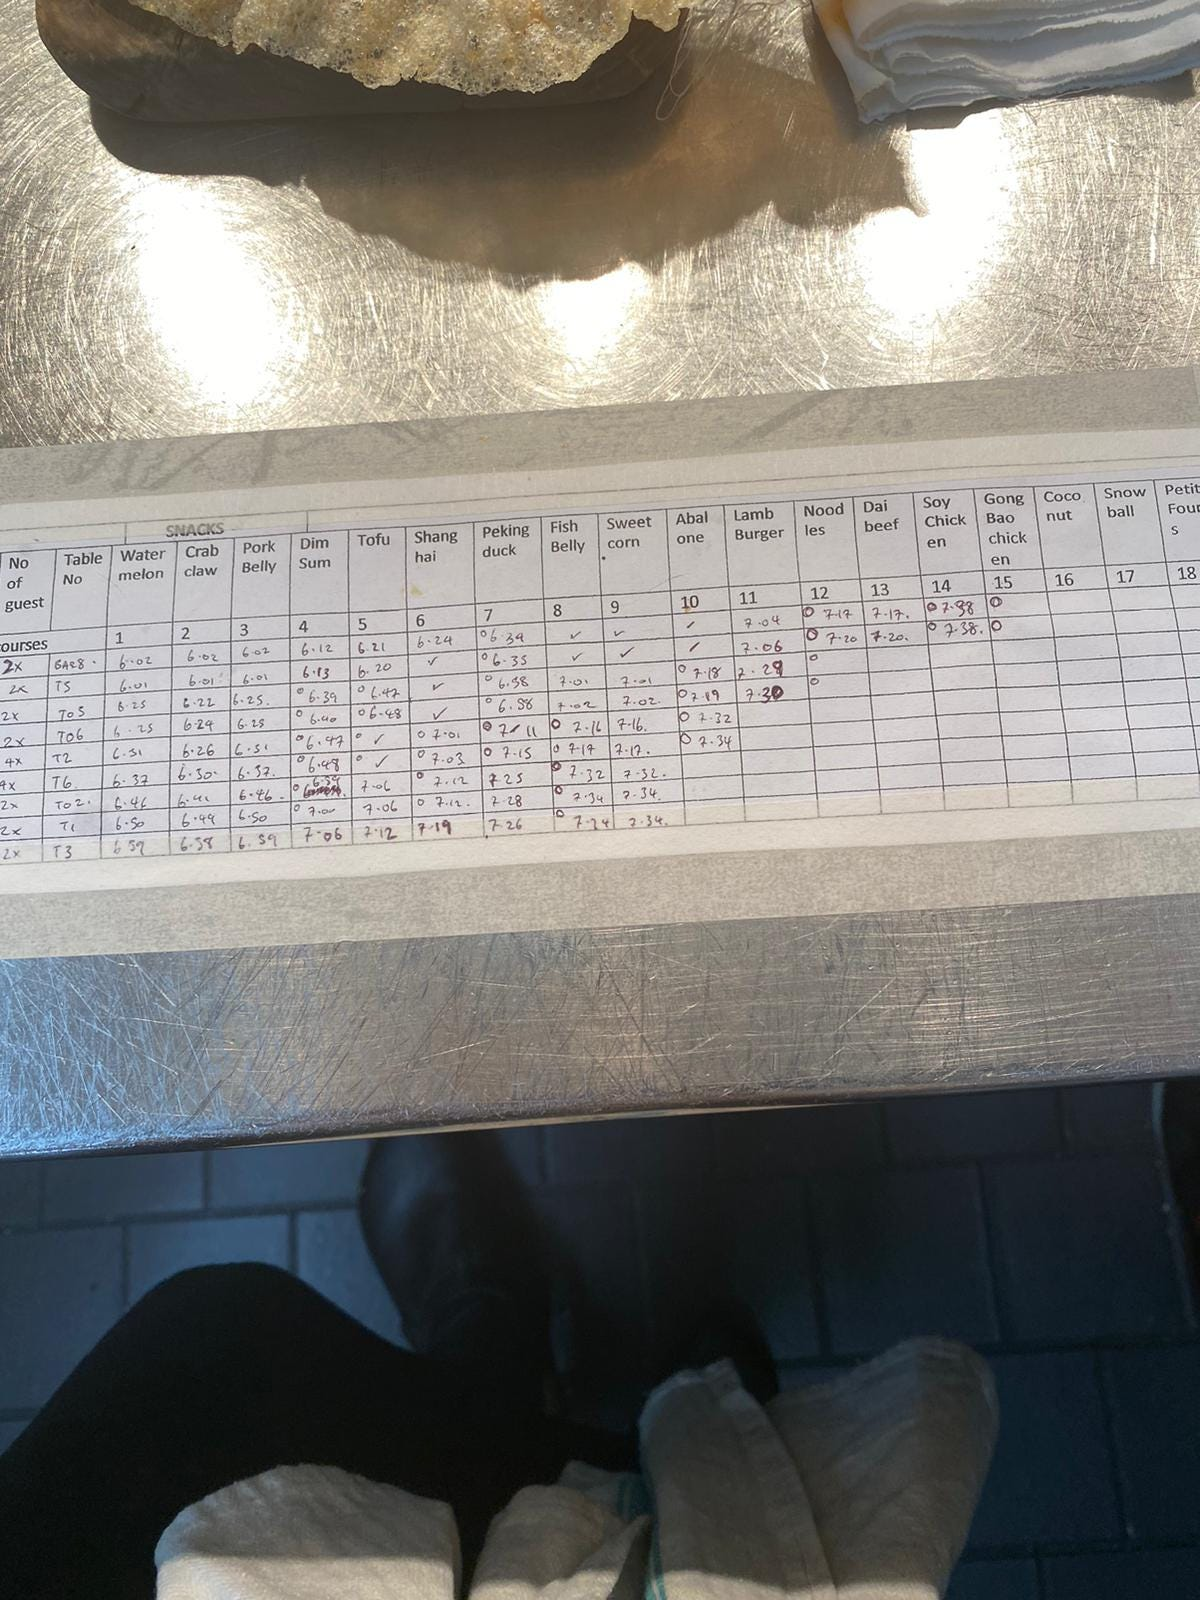 An overhead image of a paper taped to the stainless steel surface of a restaurant pass showing a table with the names of dishes and the timings for when these dishes should be served to diners